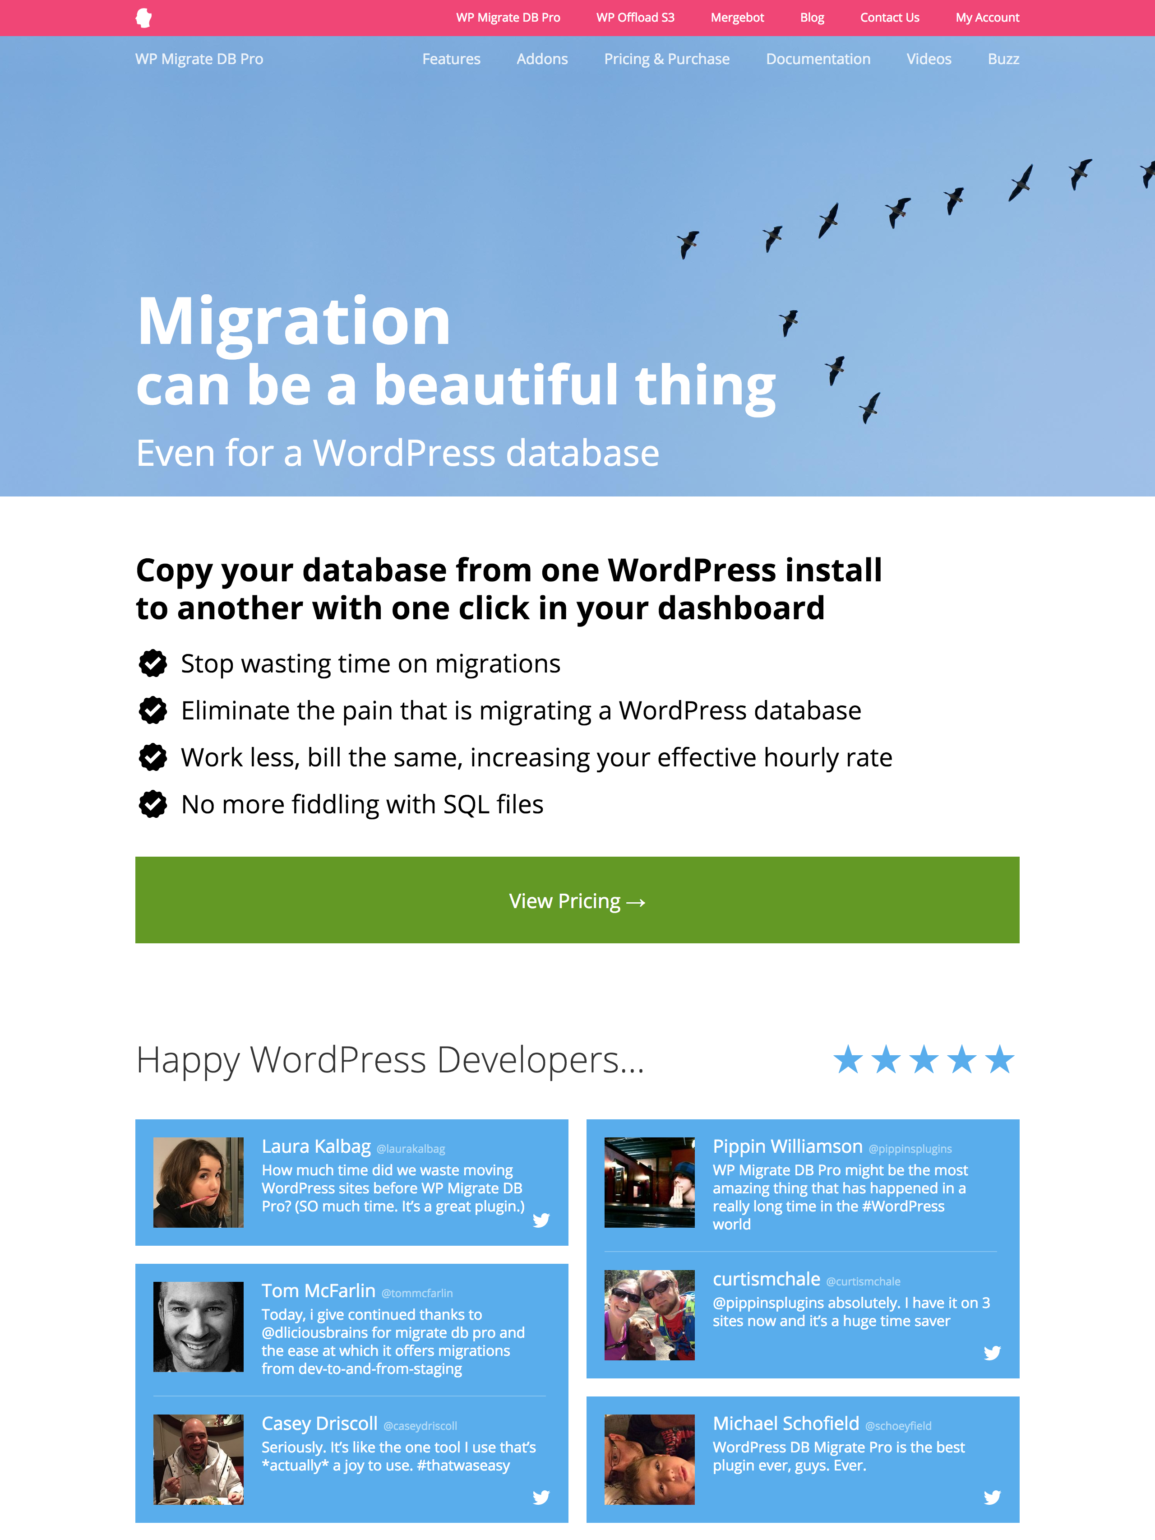 screenshot of old WP Migrate DB Pro sales page